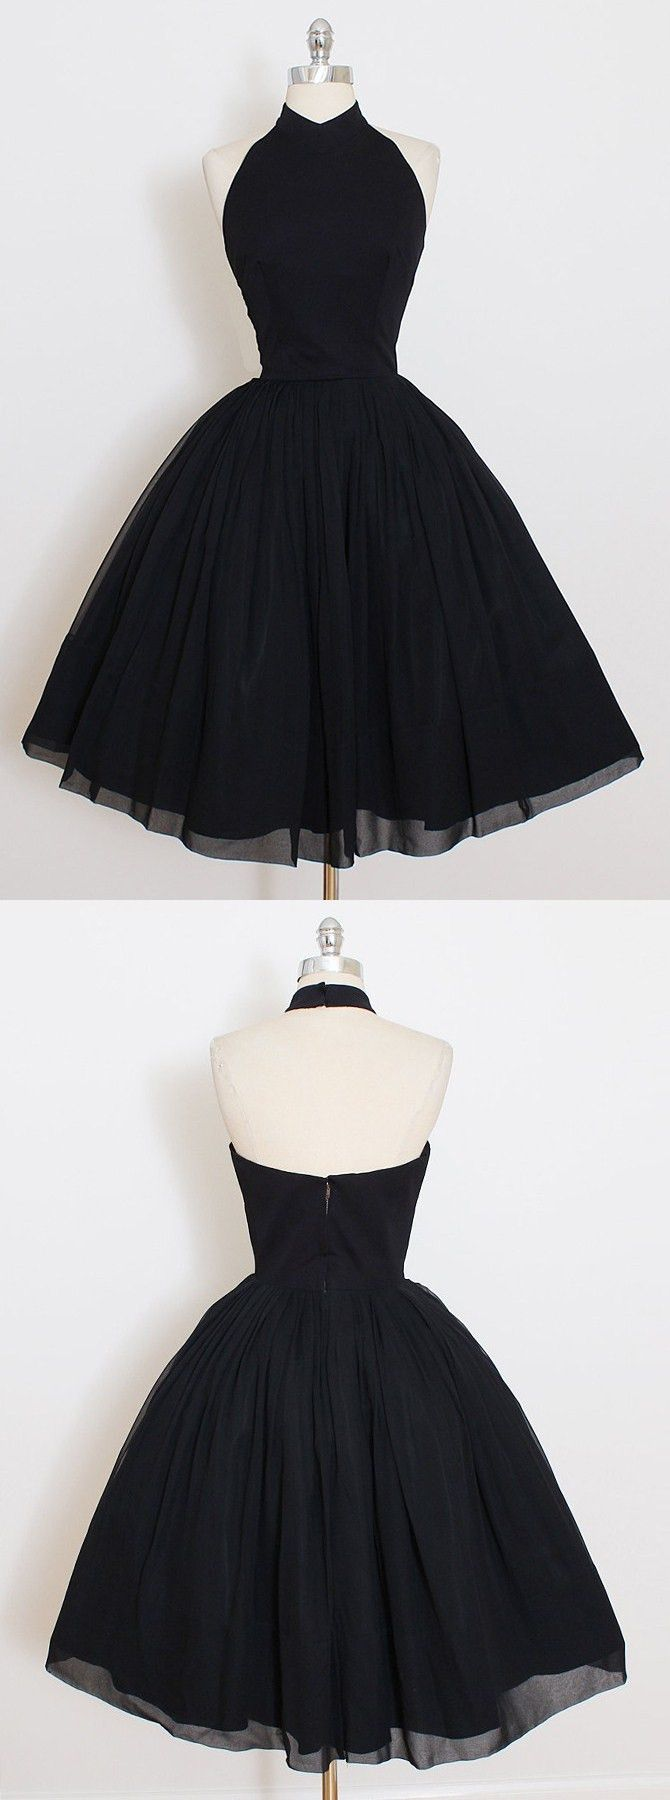 black homecoming dresses, elegant vintage party dresses, cheap short party dresses